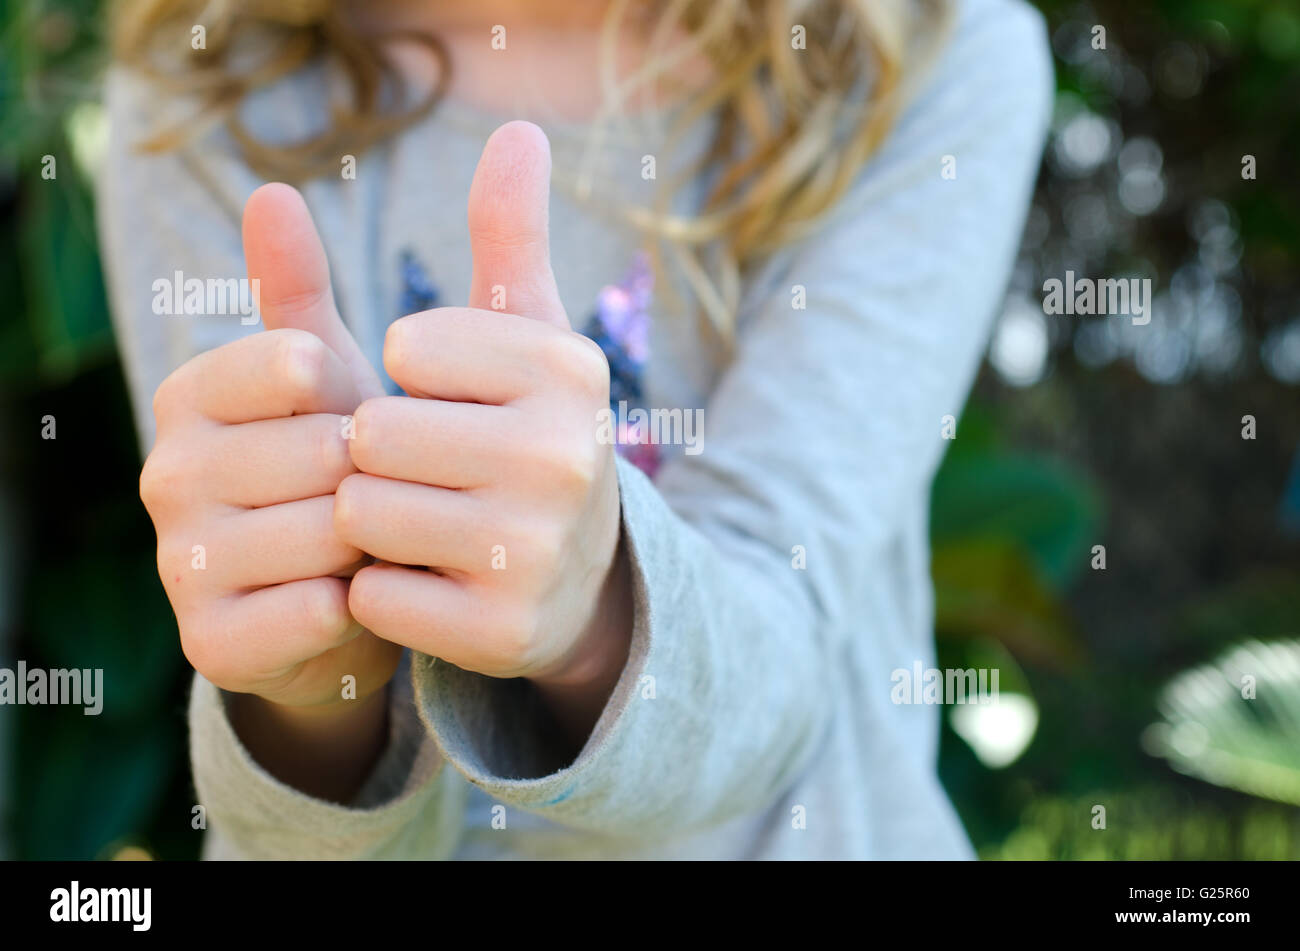 Close up of child giving two thumbs up - Stock Image